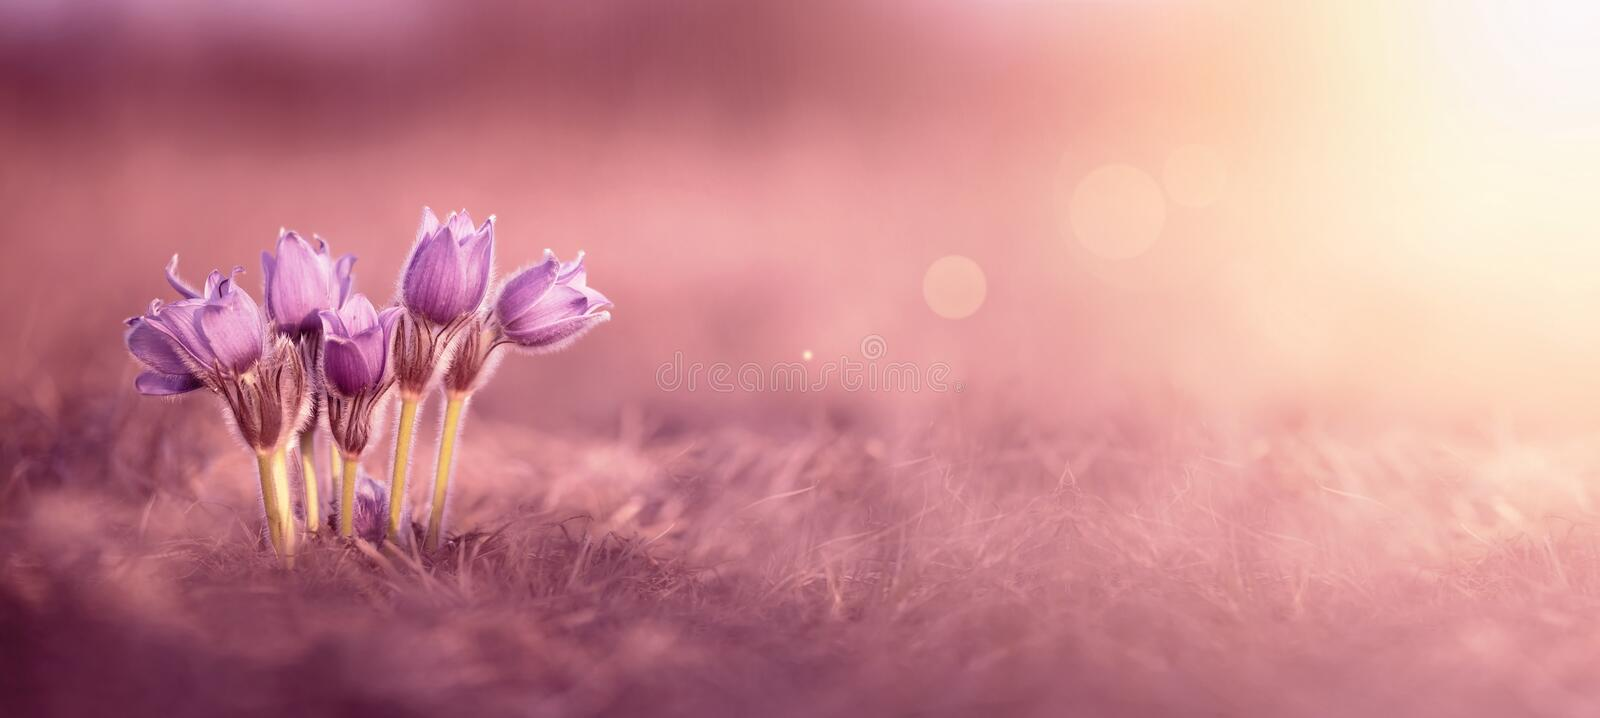 Spring flowers web banner royalty free stock photography